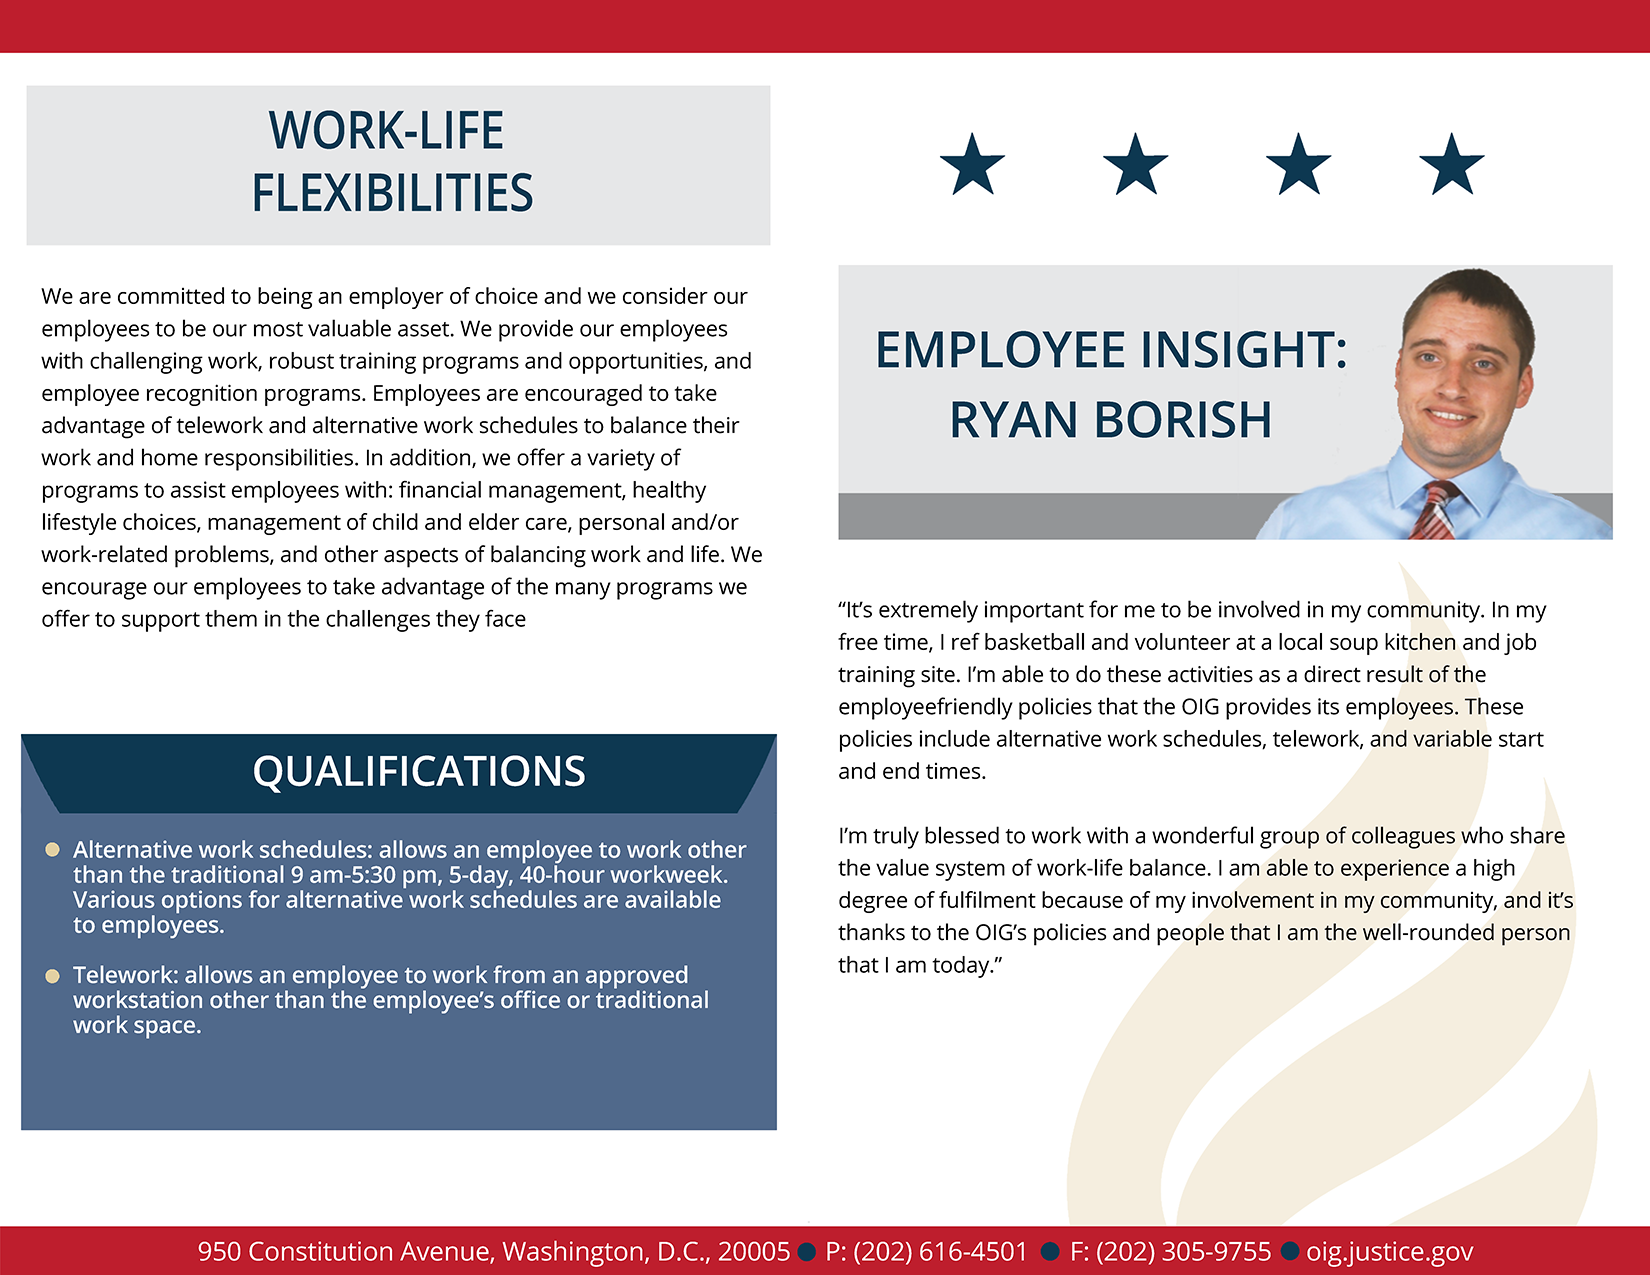 Learn more about work life flexibilities